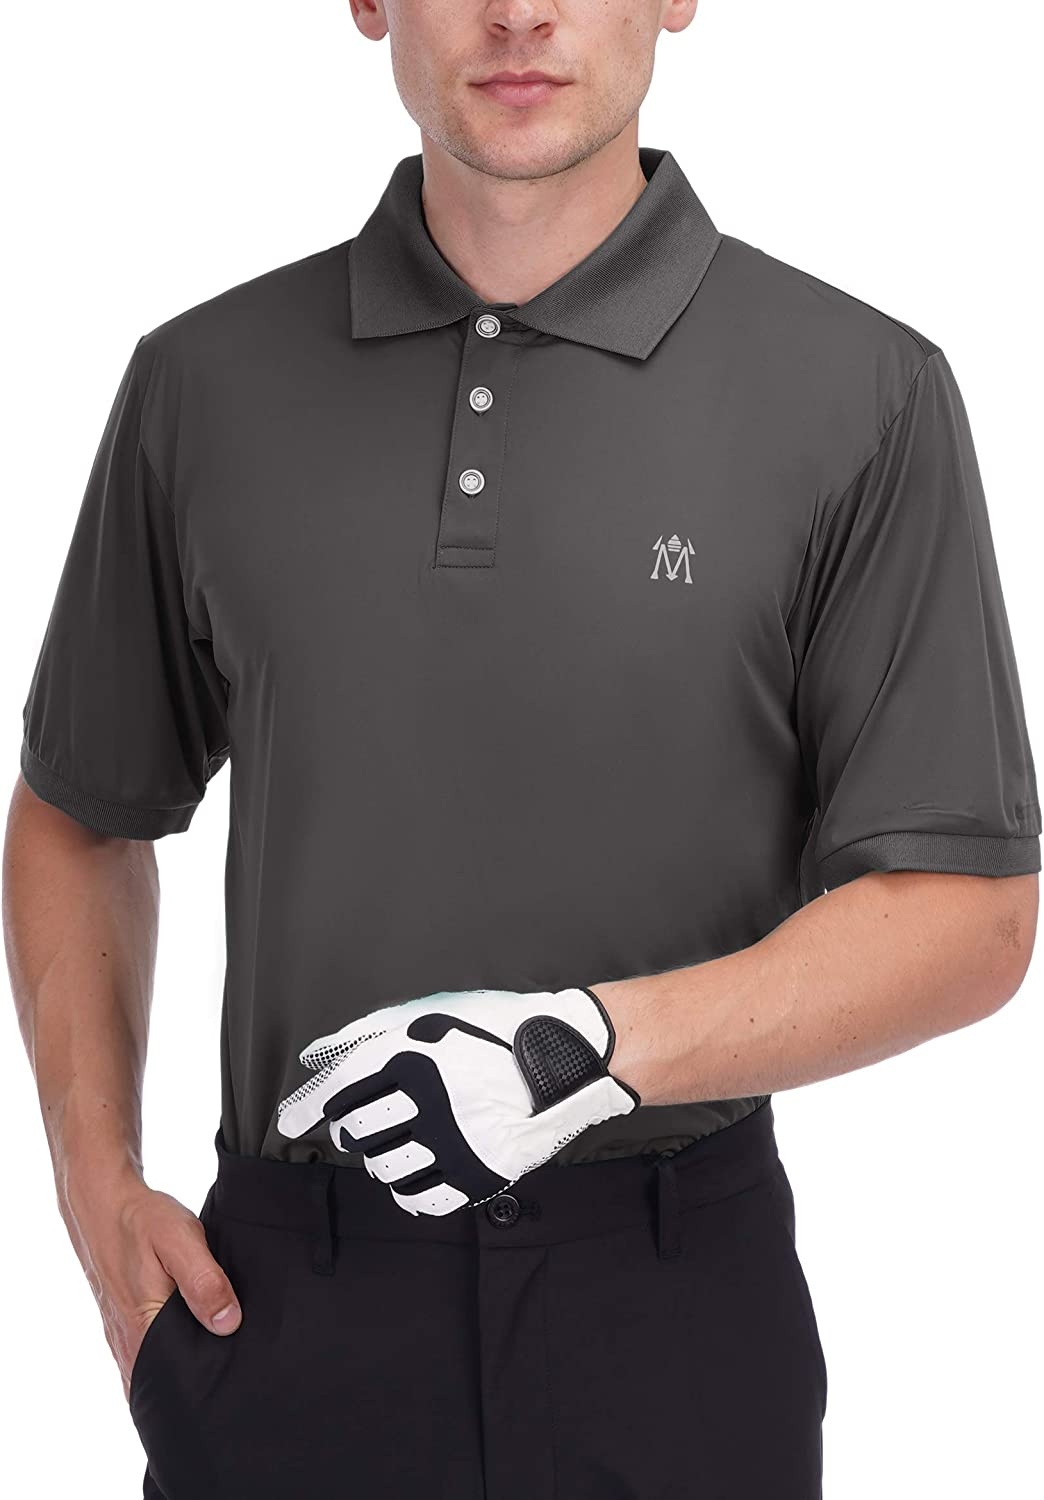 Bakery Men's Quick Dry Detroit Mall Golf Tech Lightwei Performance Free shipping on posting reviews Polo Shirt